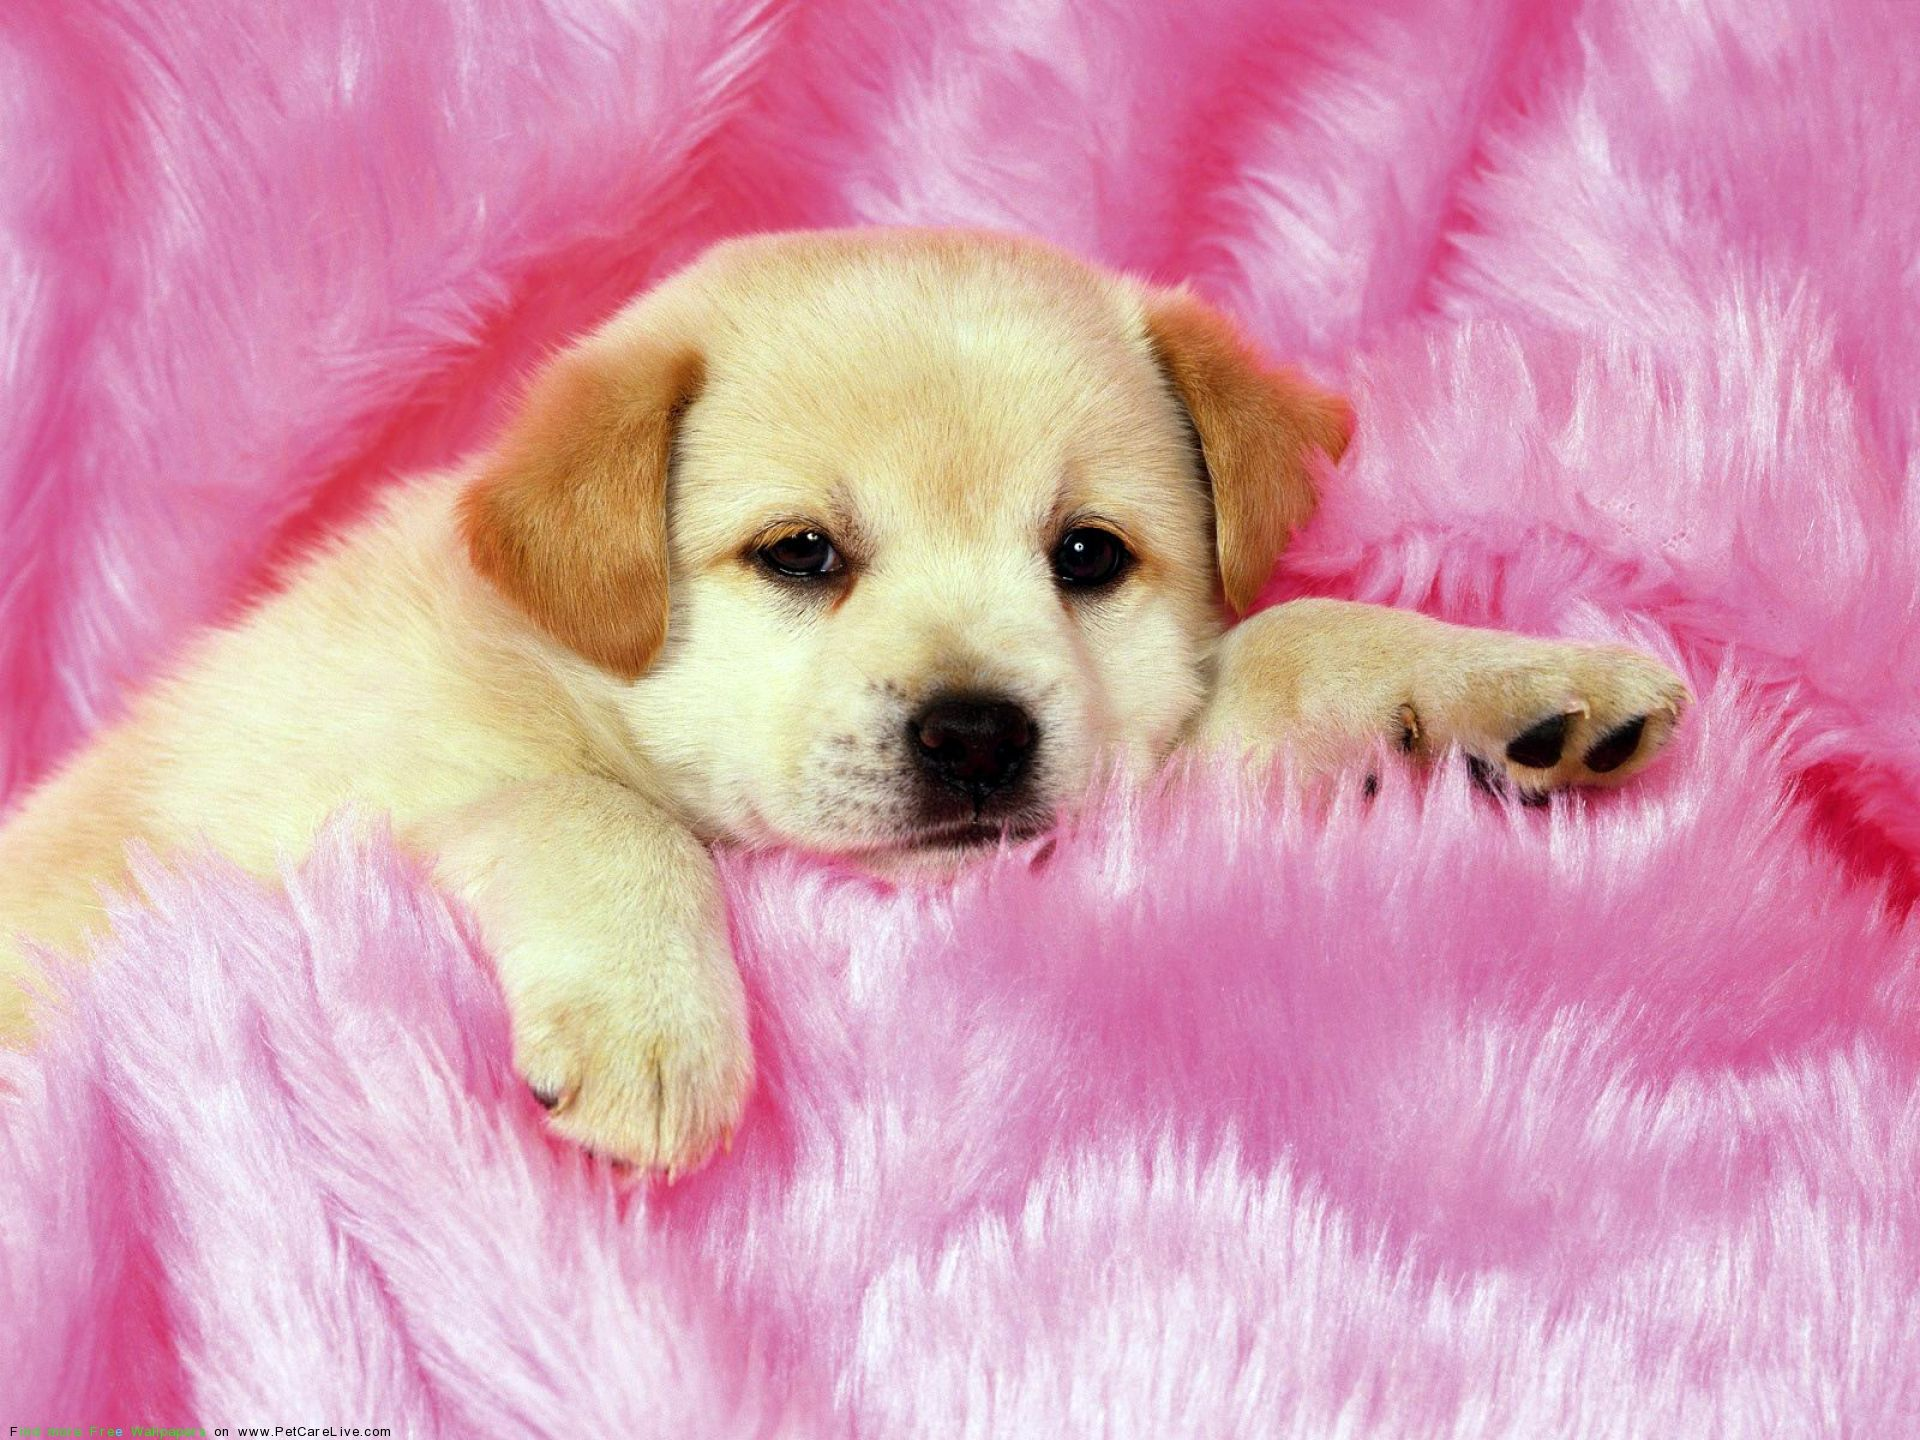 Cute Little Puppys Puppy Pictures Widescreen With Small High Quality For Laptop Ideas About ...